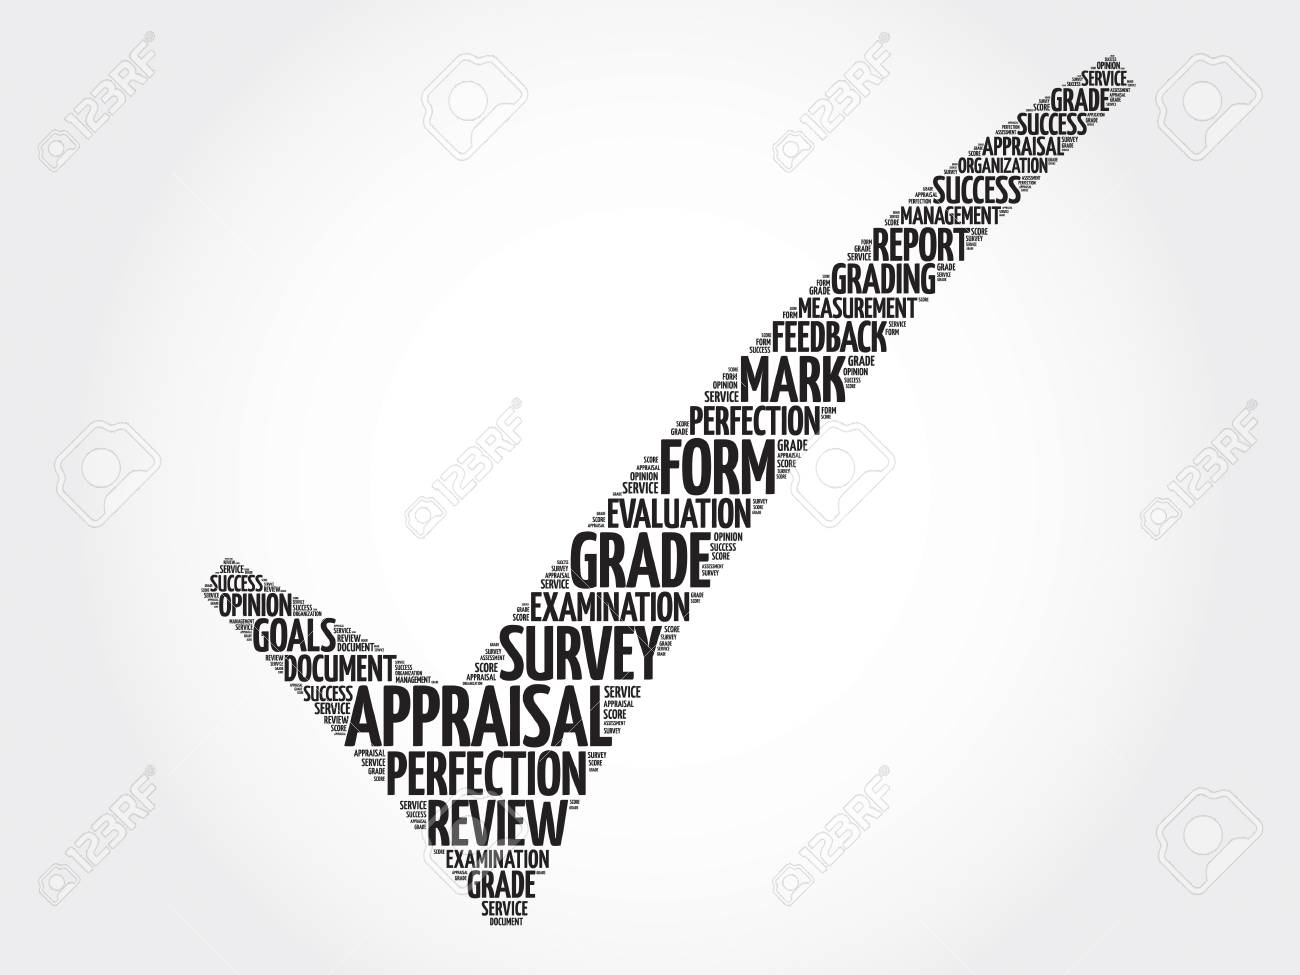 Appraisal Check Mark Vector Business Concept Words Cloud Royalty – Words for Appraisal